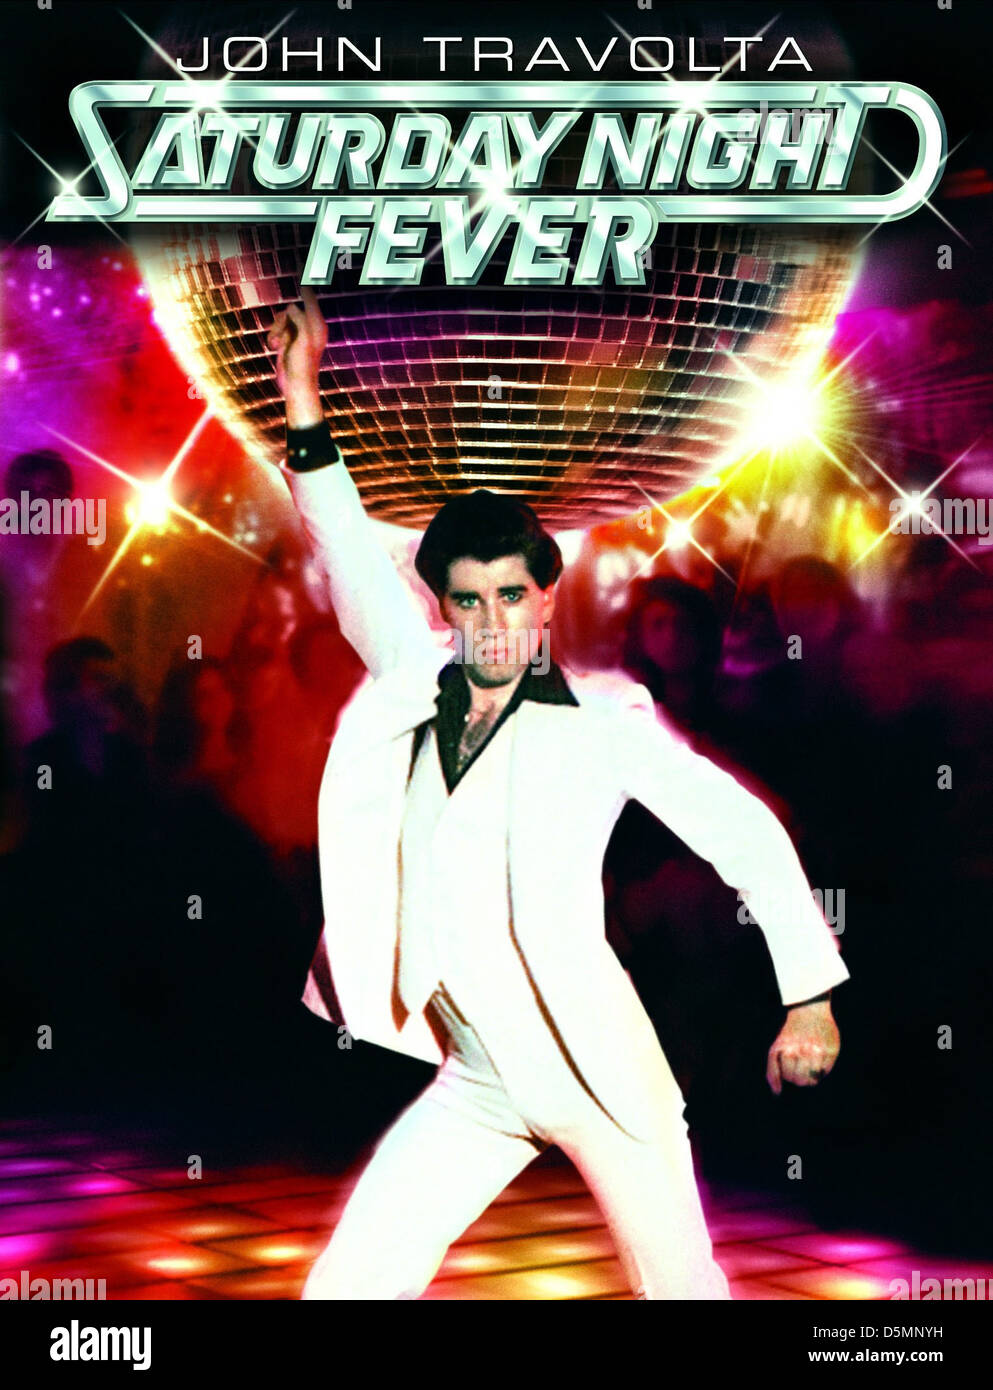 Download Film Saturday Night Fever 1977